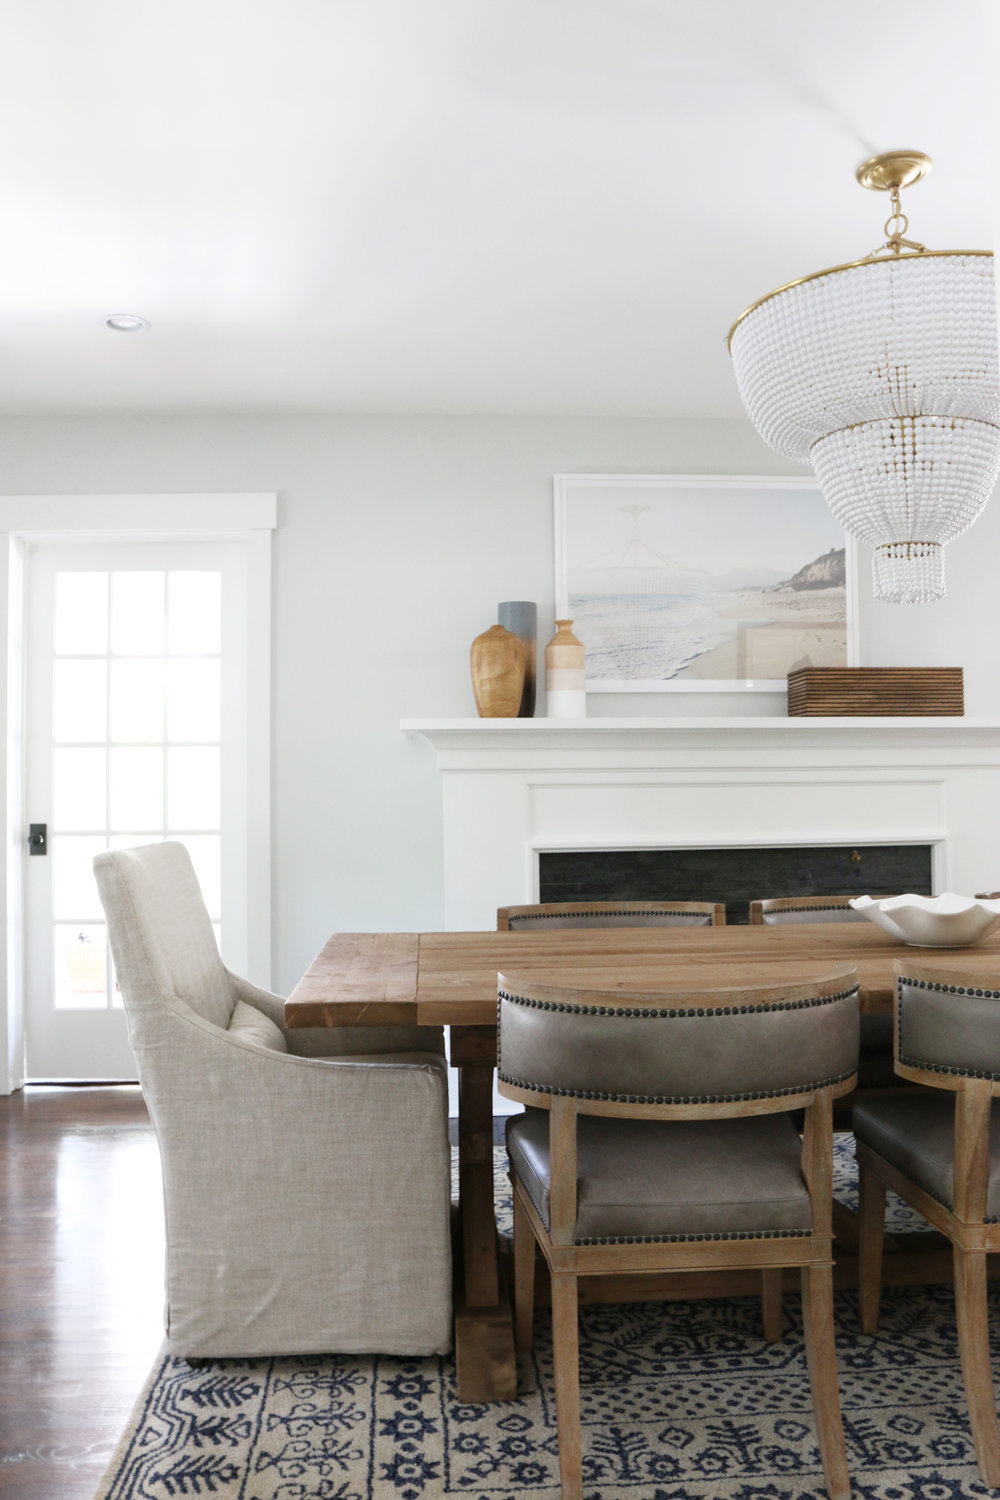 5 Fashion Rules that Apply to Interior Design